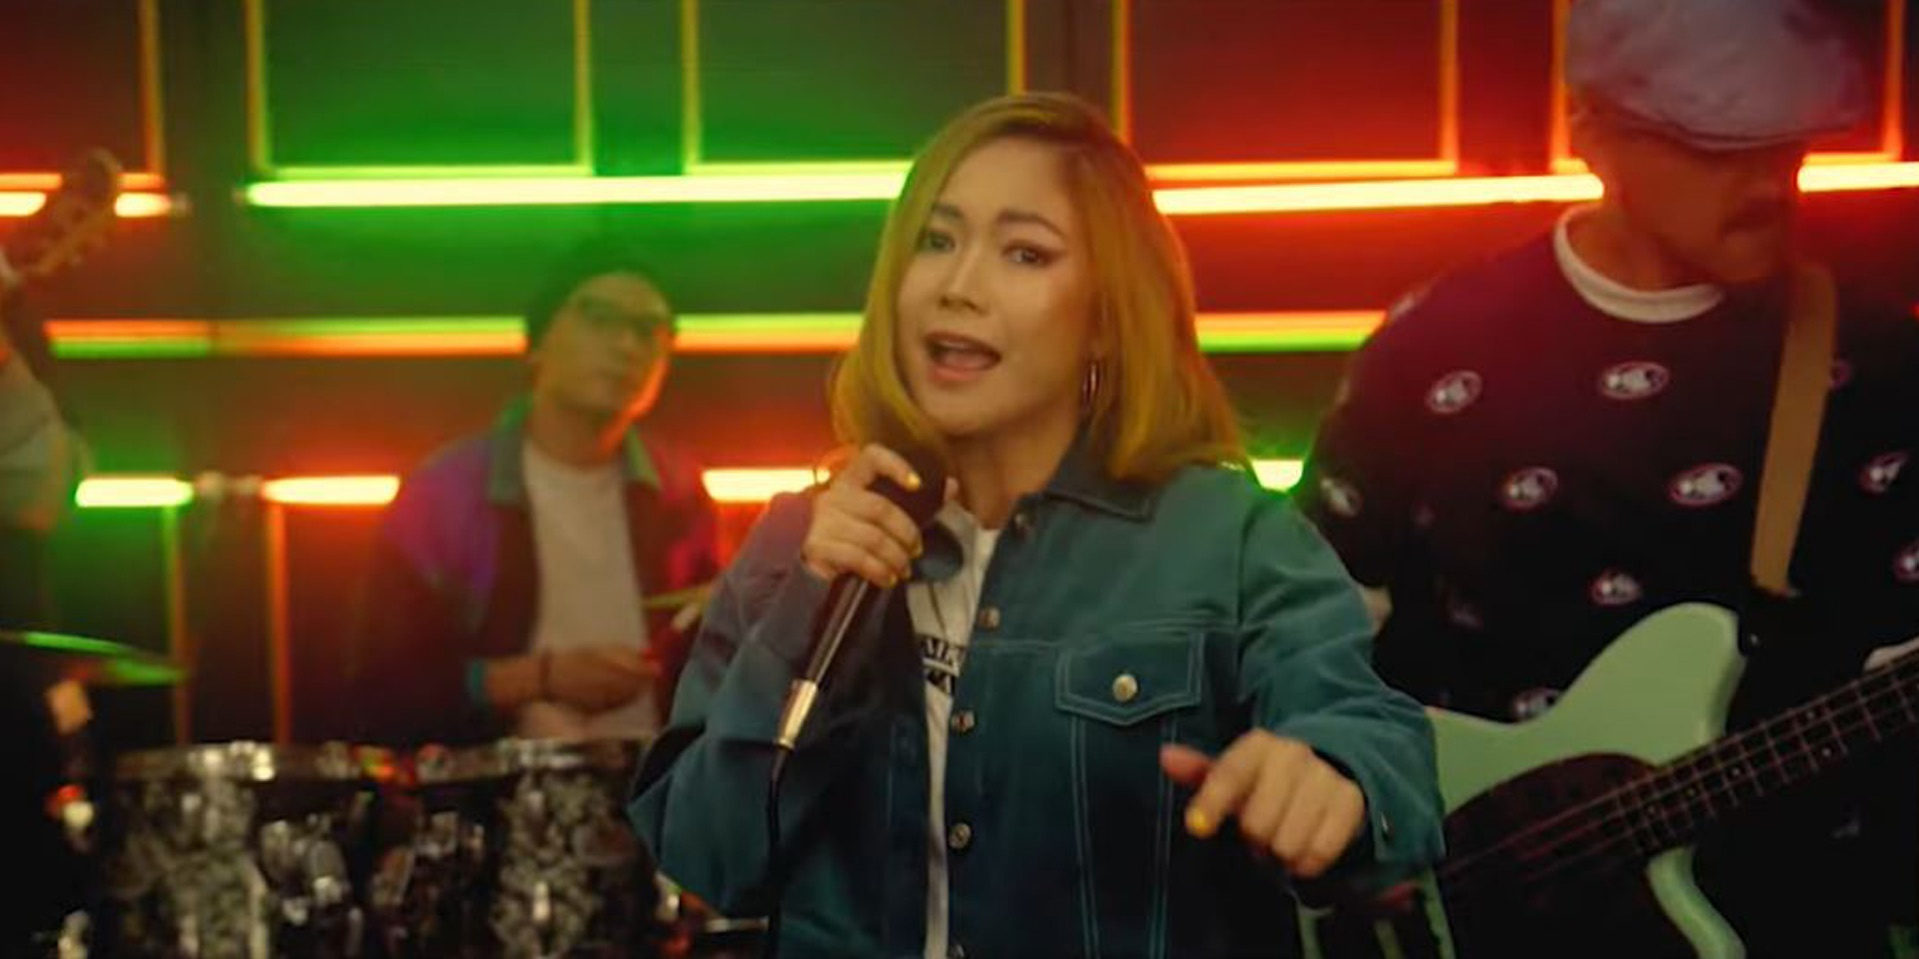 Yeng Constantino returns to her pop-rock roots in 'Sana Na Lang' music video – watch